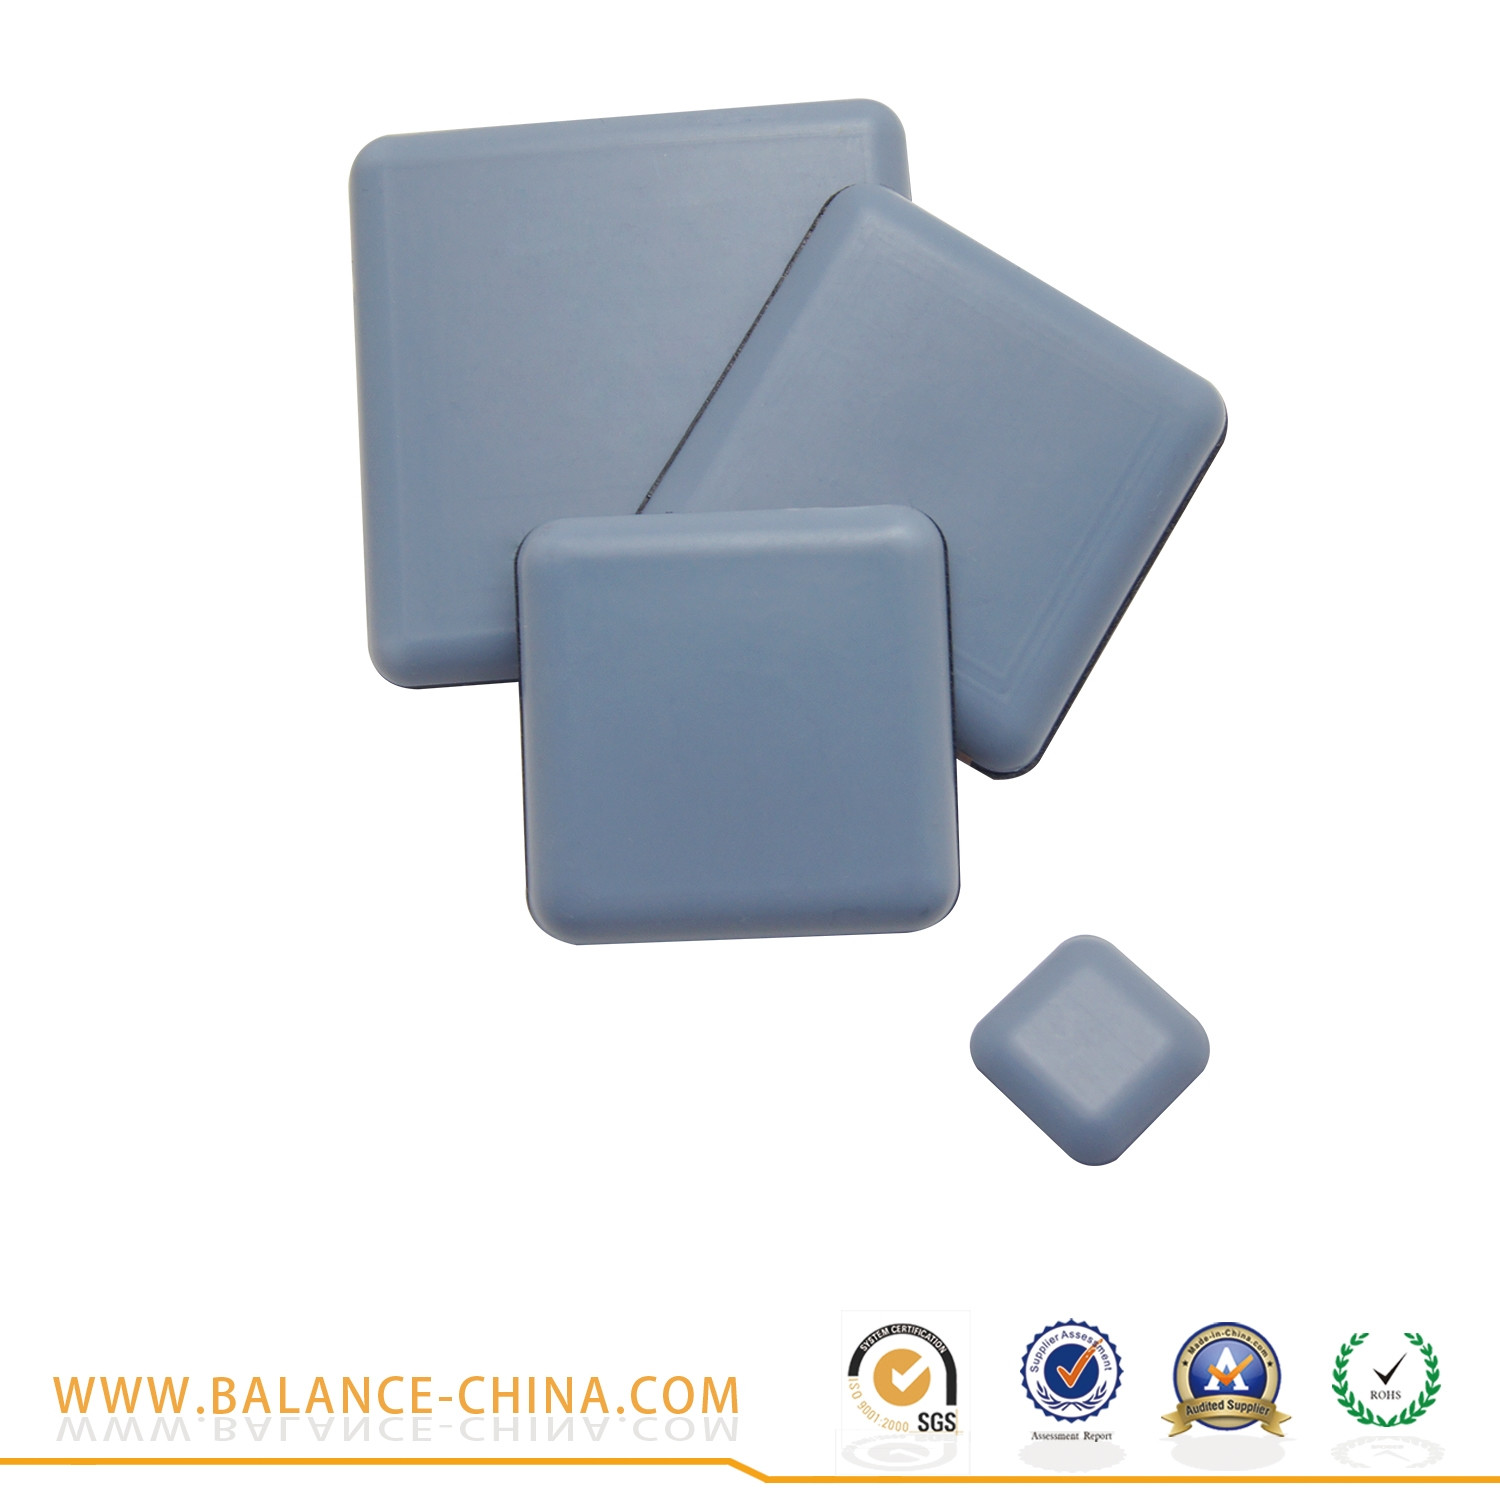 furniture pads for hardwood floors of gliding furniture pads furniture gliders baby safety supplier regarding gliding furniture pads furniture gliders